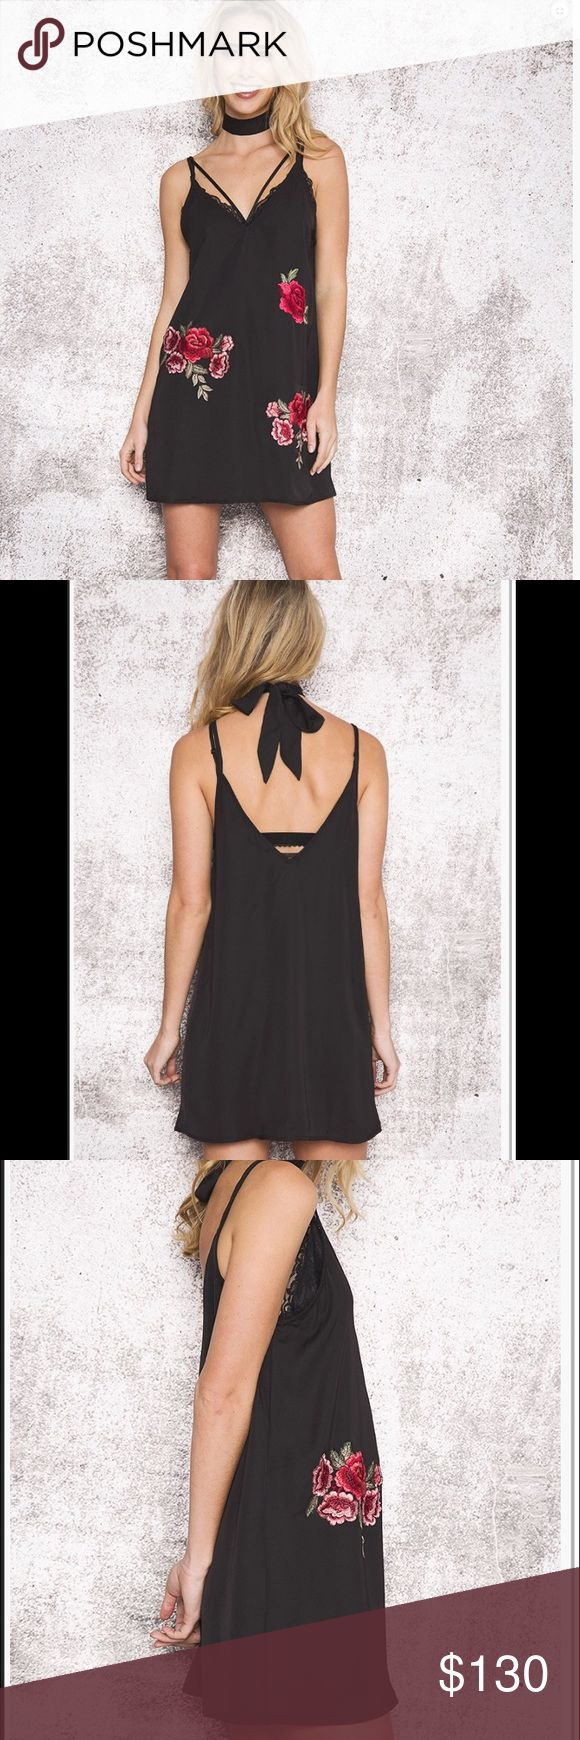 Rosalie black embroidered rose silky choker dress Brand new with tags, from an Australian boutique. Tagged for exposure For Love and Lemons Dresses Mini